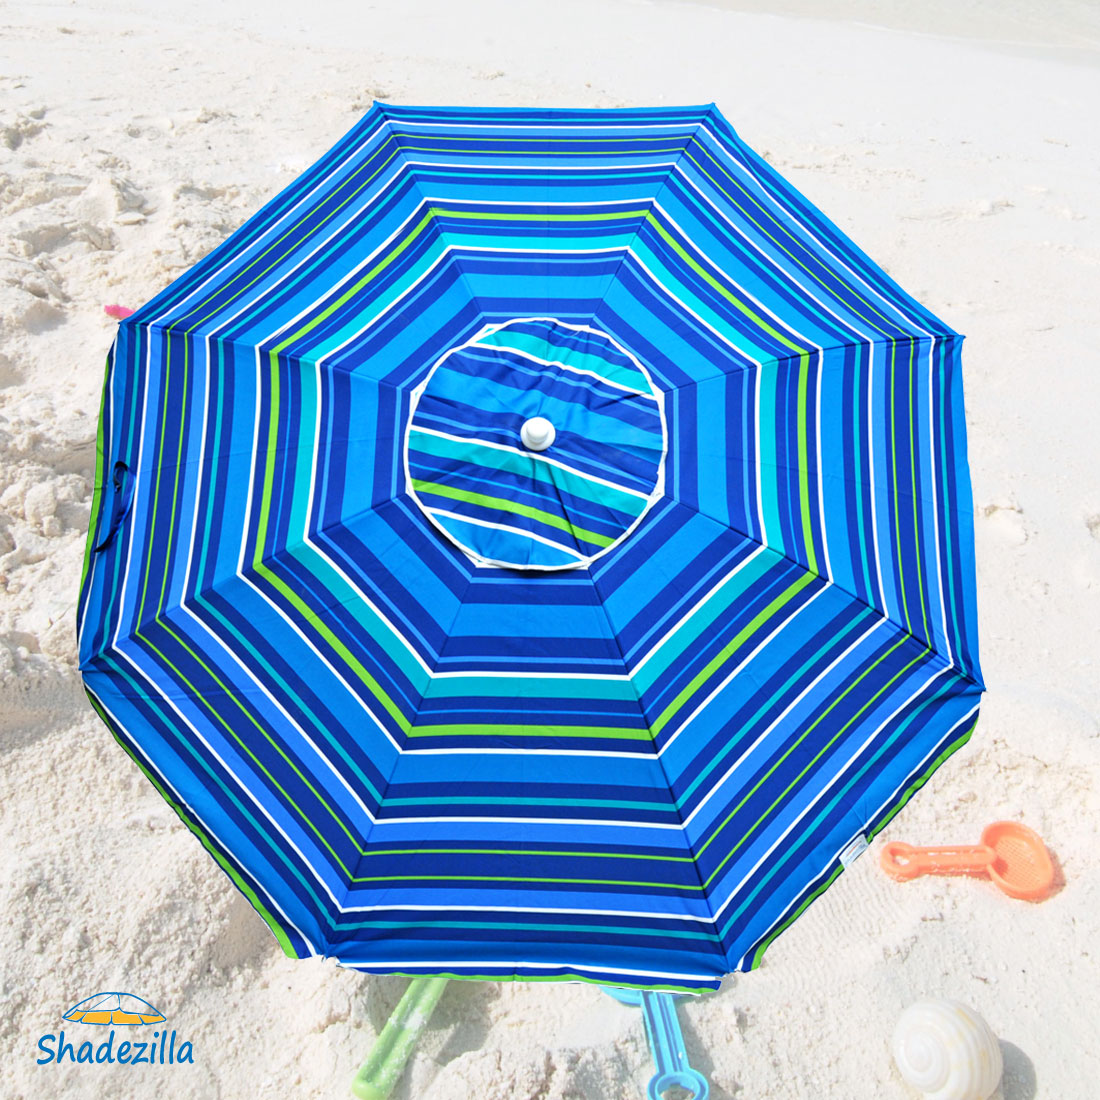 Platinum 6.5 ft Polyester UPF 100 Beach Umbrella with Vent & Tilt